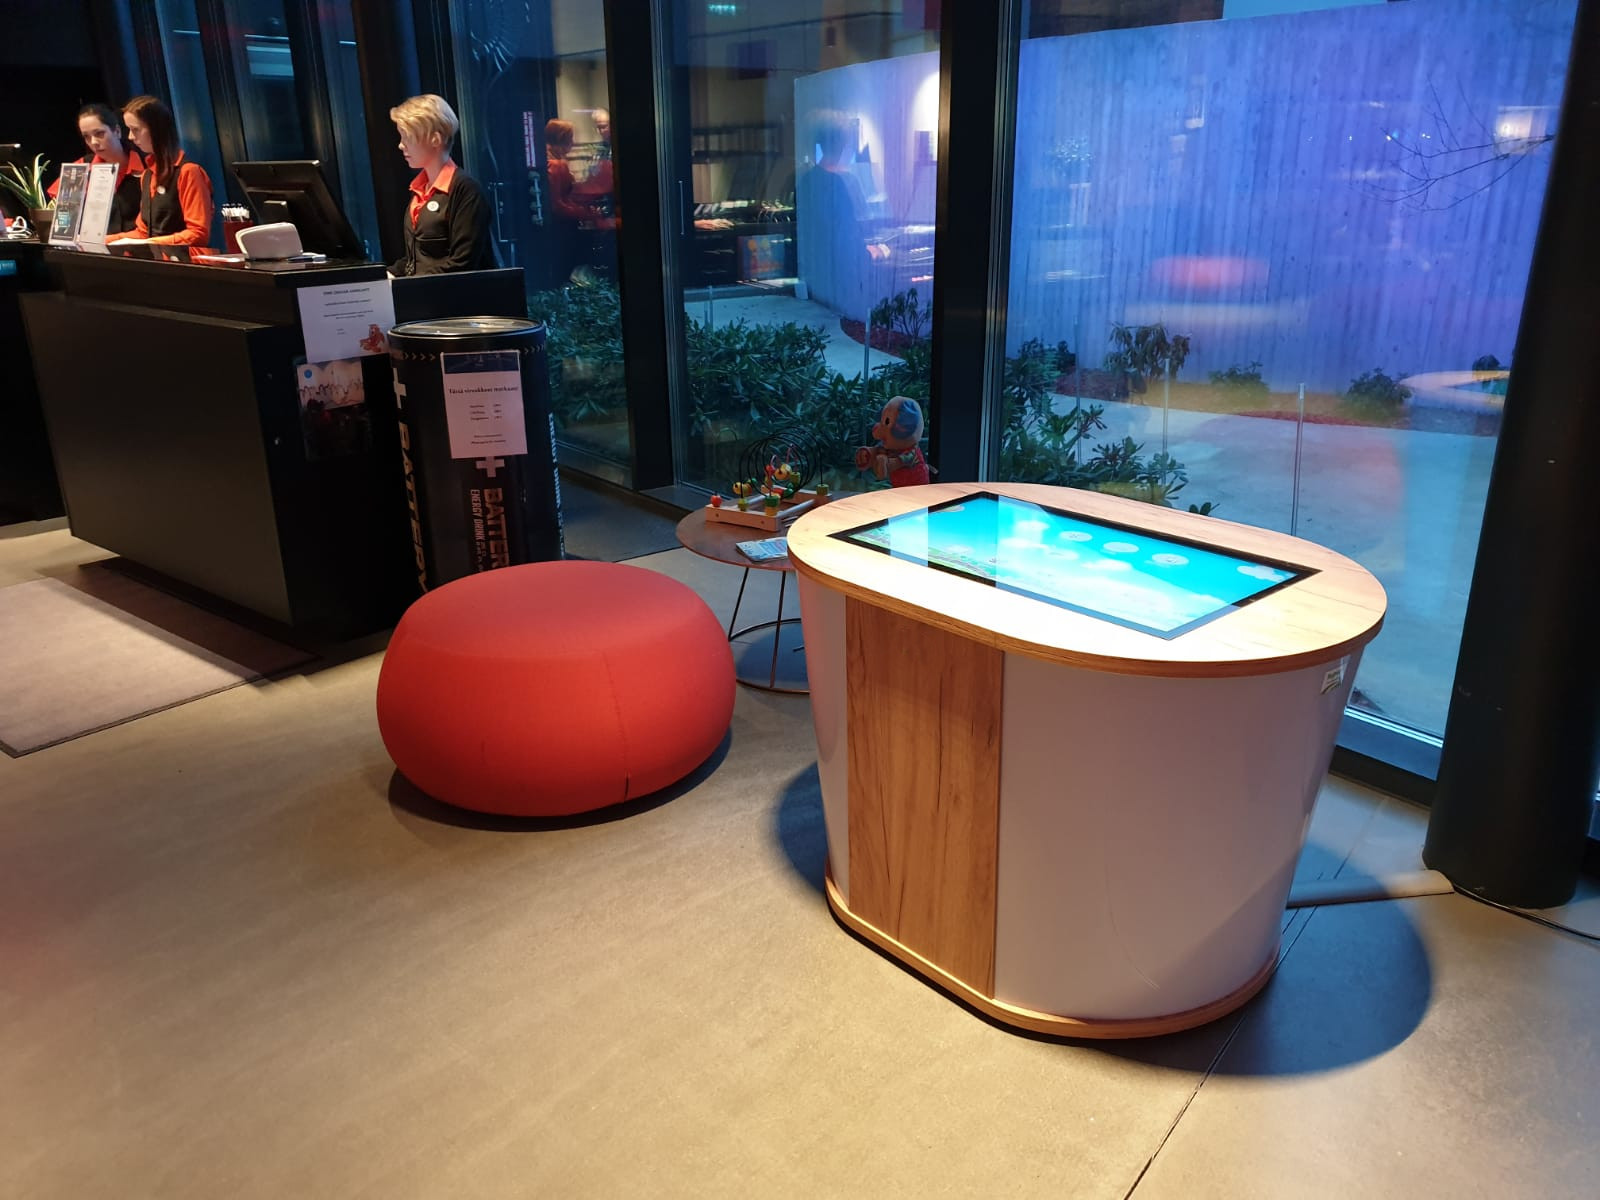 Magic Play Table Deluxe in der Lobby des Hotel Torni, Tampere (Finland)